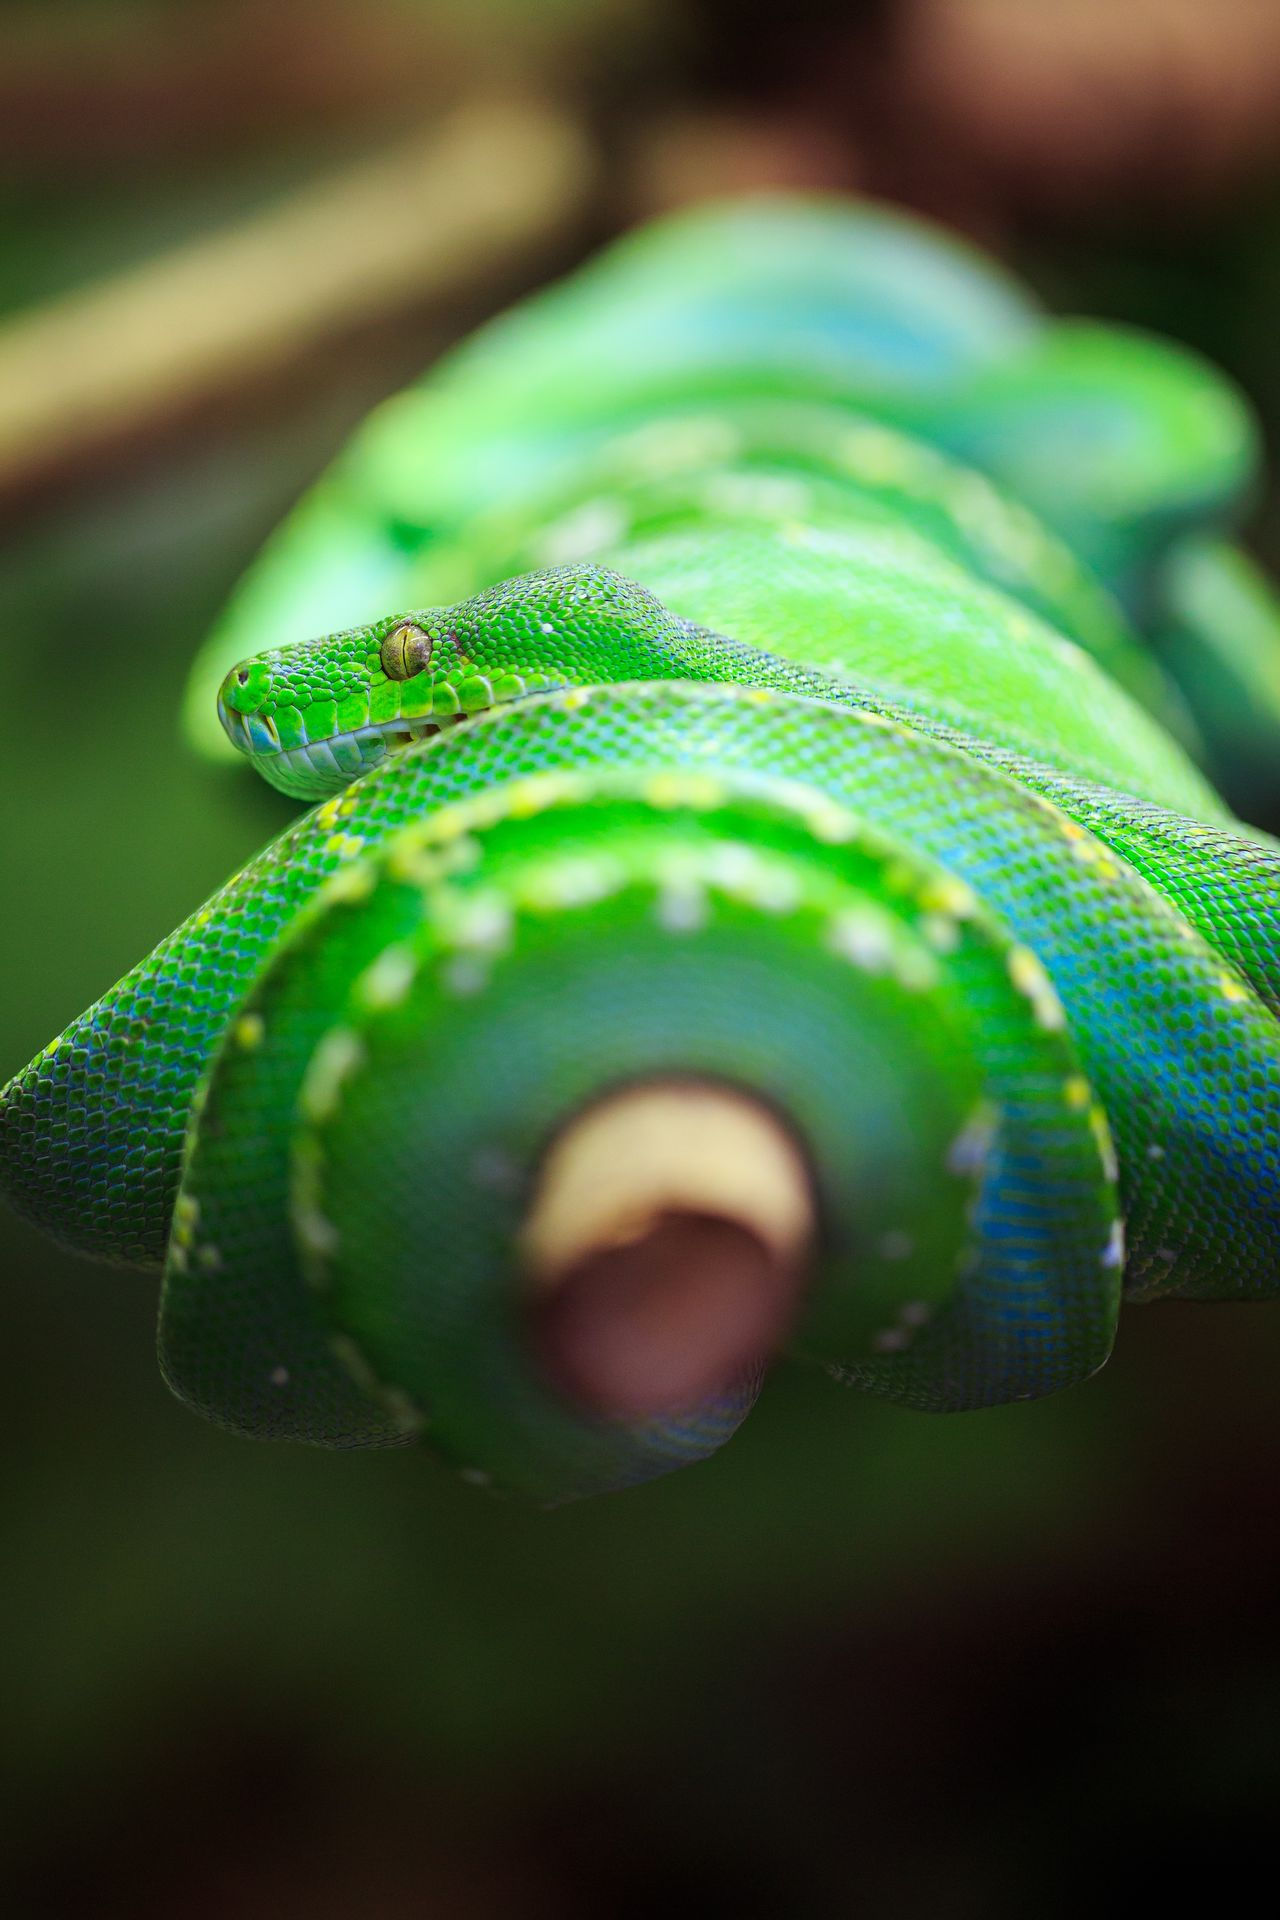 Animal Beauty In Nature Bokeh Close-up Green Green Color Macro Snake Tranquility